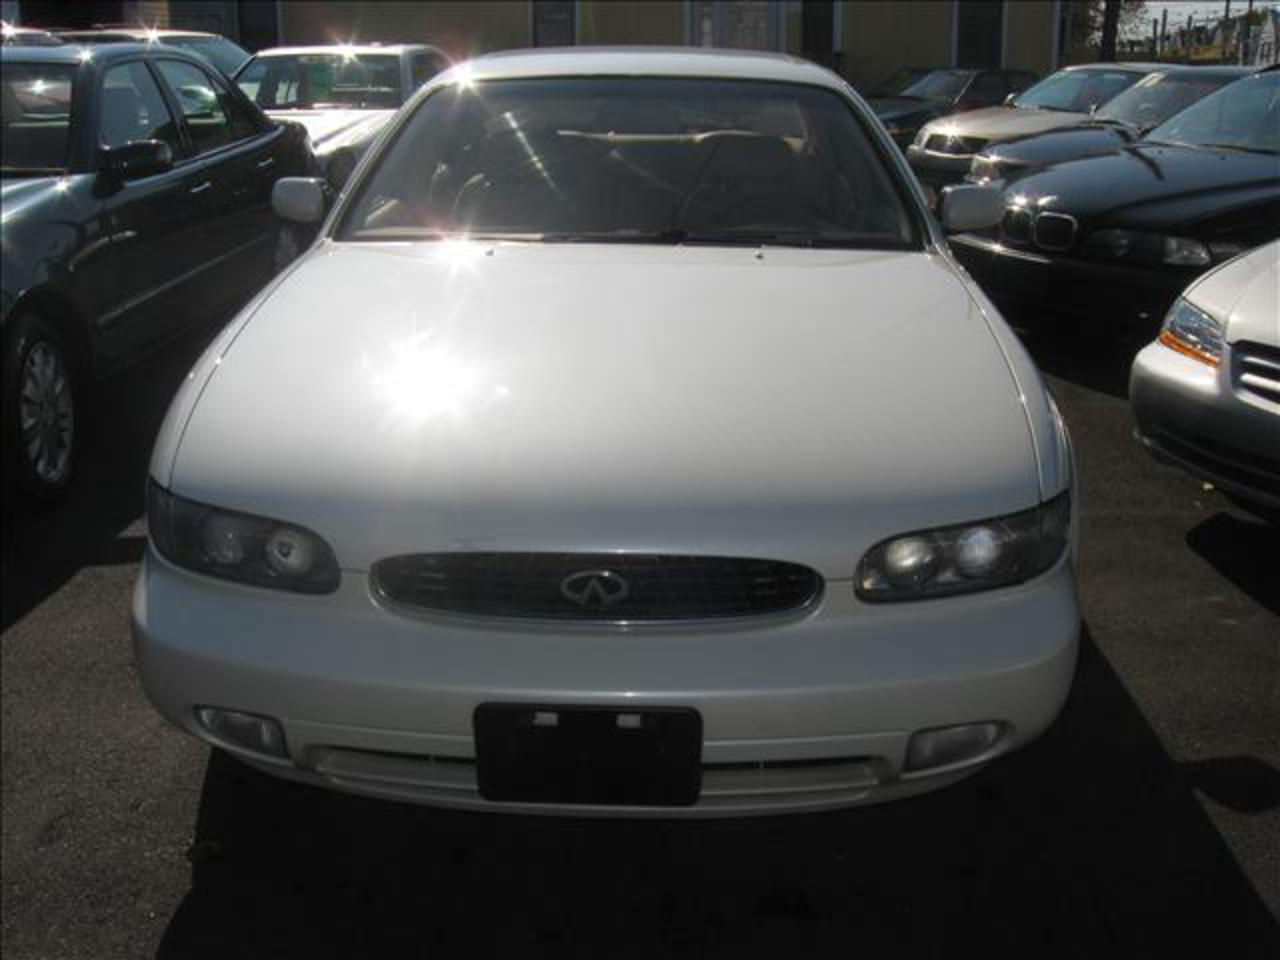 Infiniti J30 - Used Cars for Sale - Carsforsale.